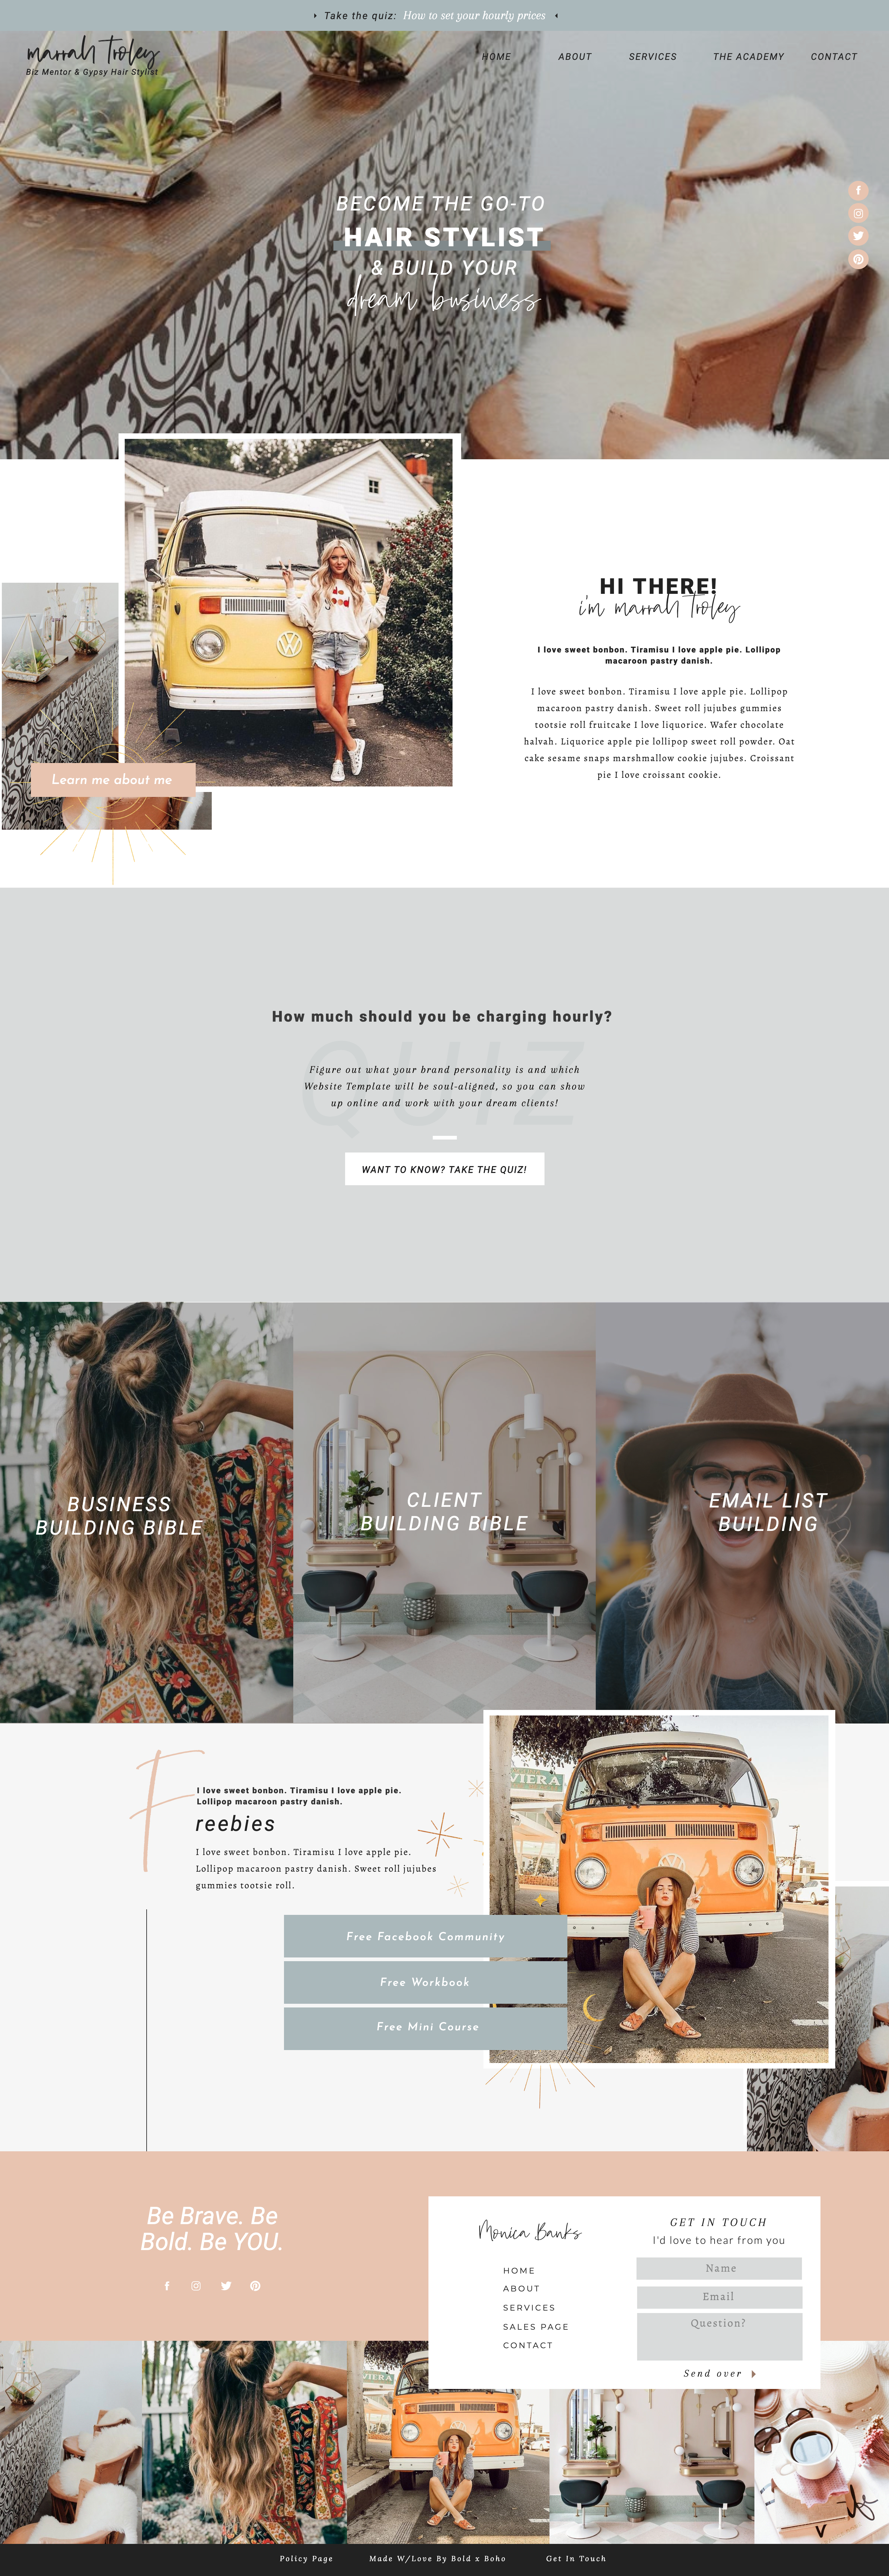 Showit Website Templates For Online Ambitious Entrepreneurs Ready For Their Next Level Boho Website Website Design Inspiration Showit Website